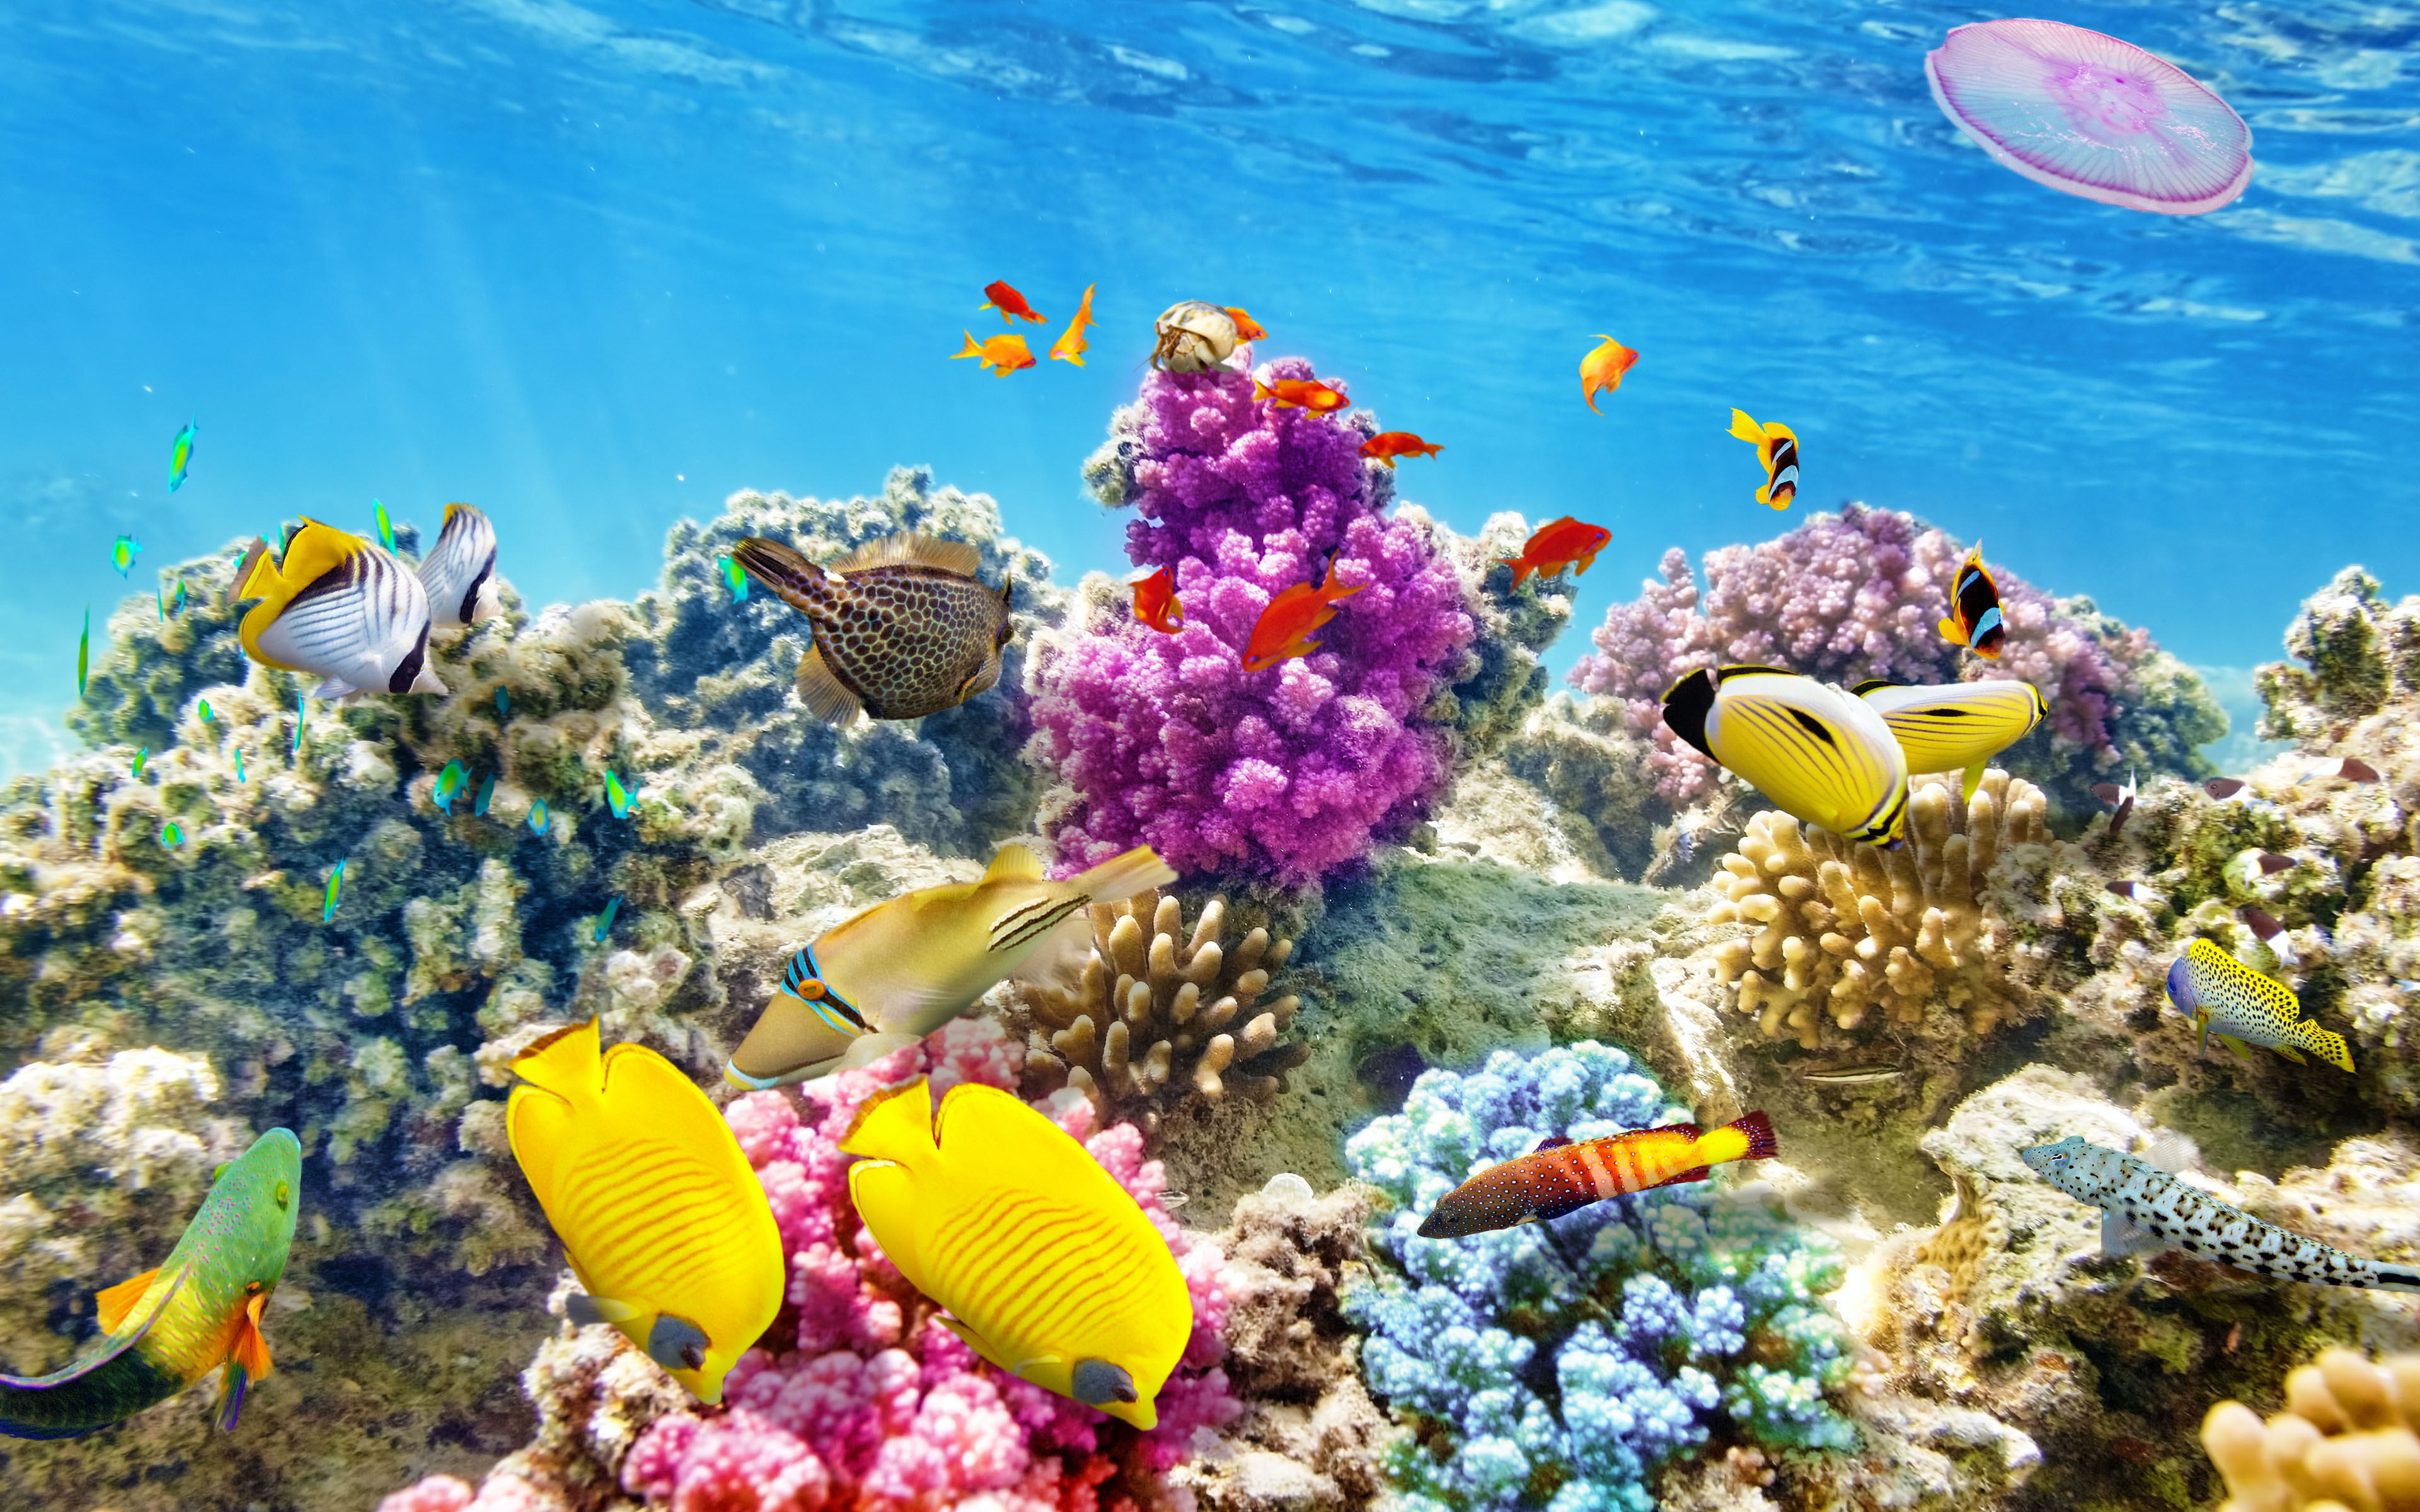 Hunting Iphone Wallpaper Download Wallpaper Underwater World Coral Reef Tropical